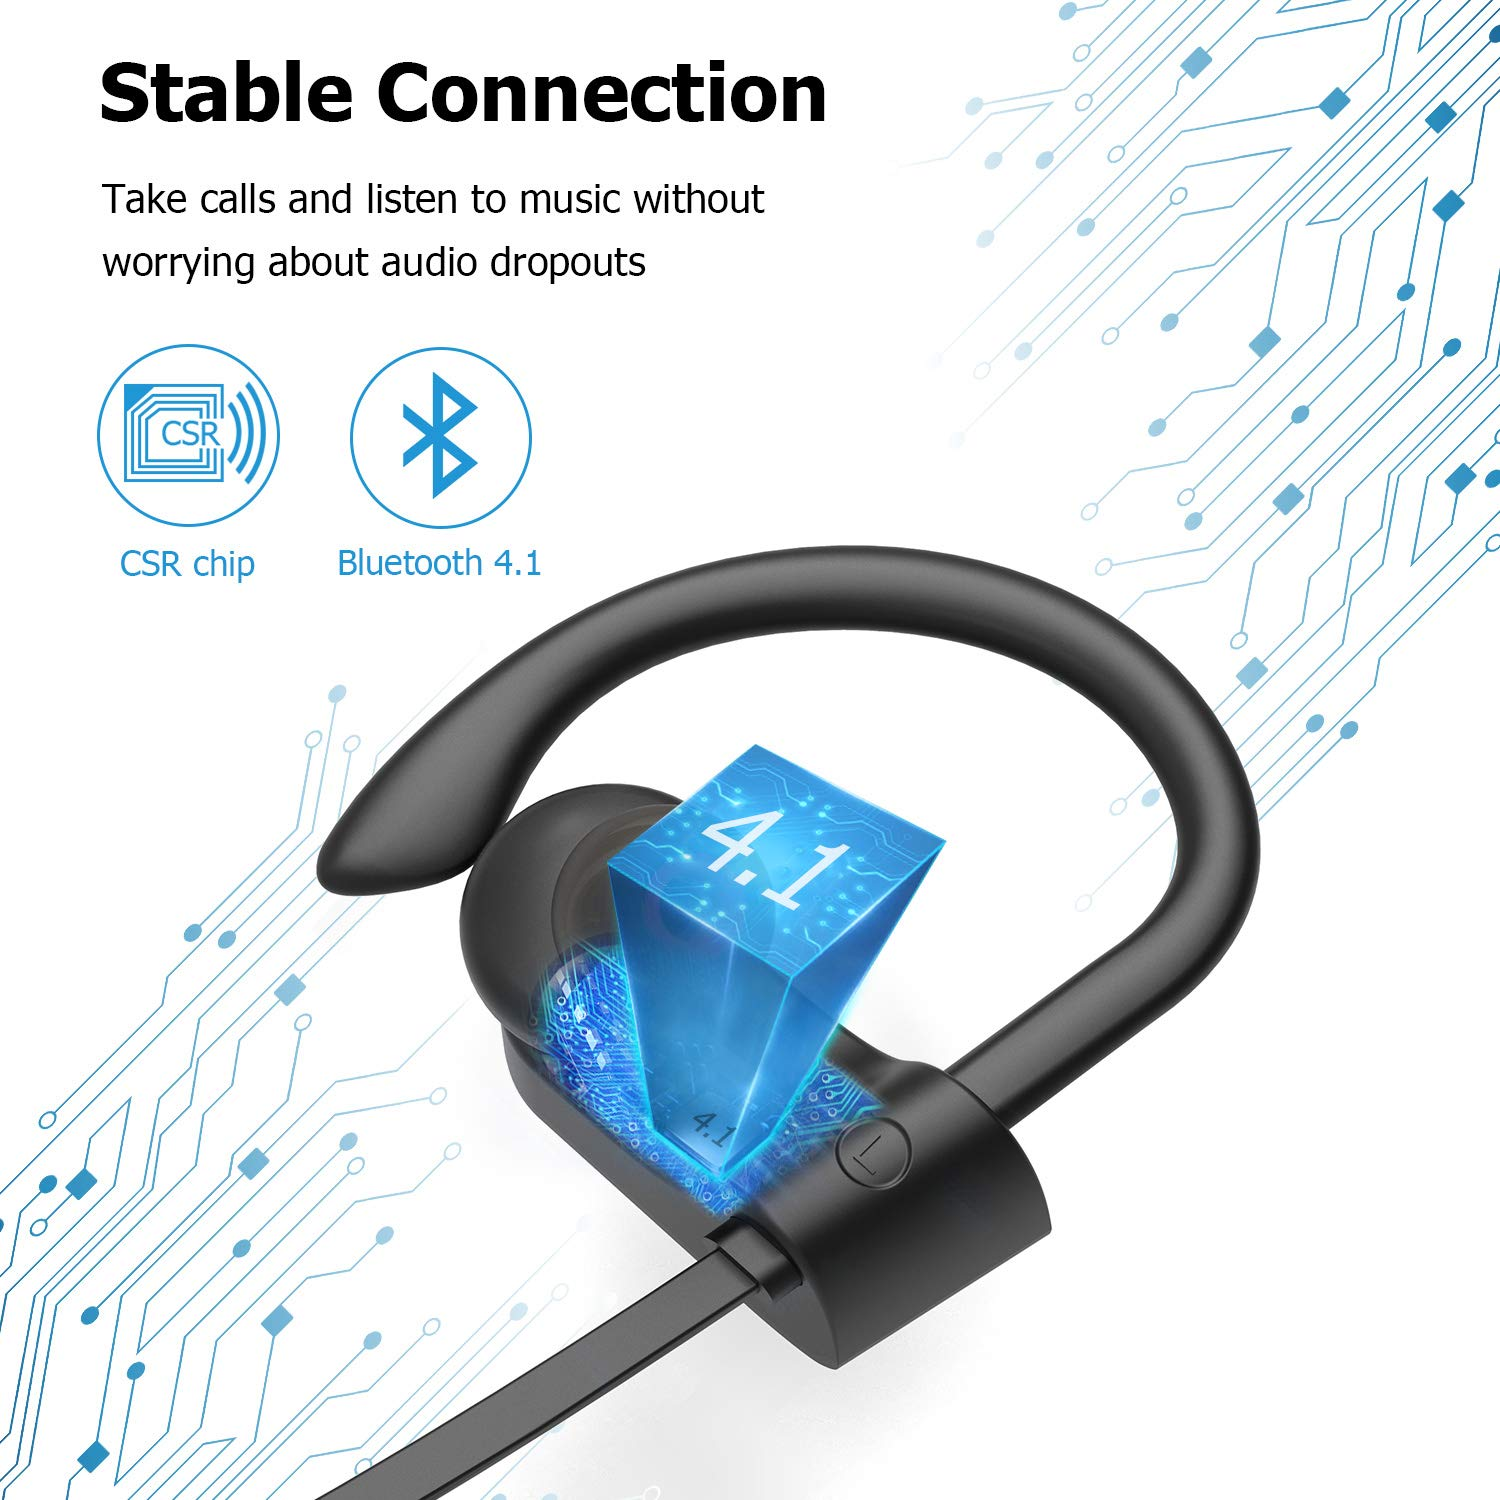 LETSCOM Wireless Earbuds IPX7 Waterproof Noise Cancelling Headsets Richer Bass /& HiFi Stereo Sports Earphones 8 Hours Playtime Running Headphones with Travel Case Bluetooth Headphones